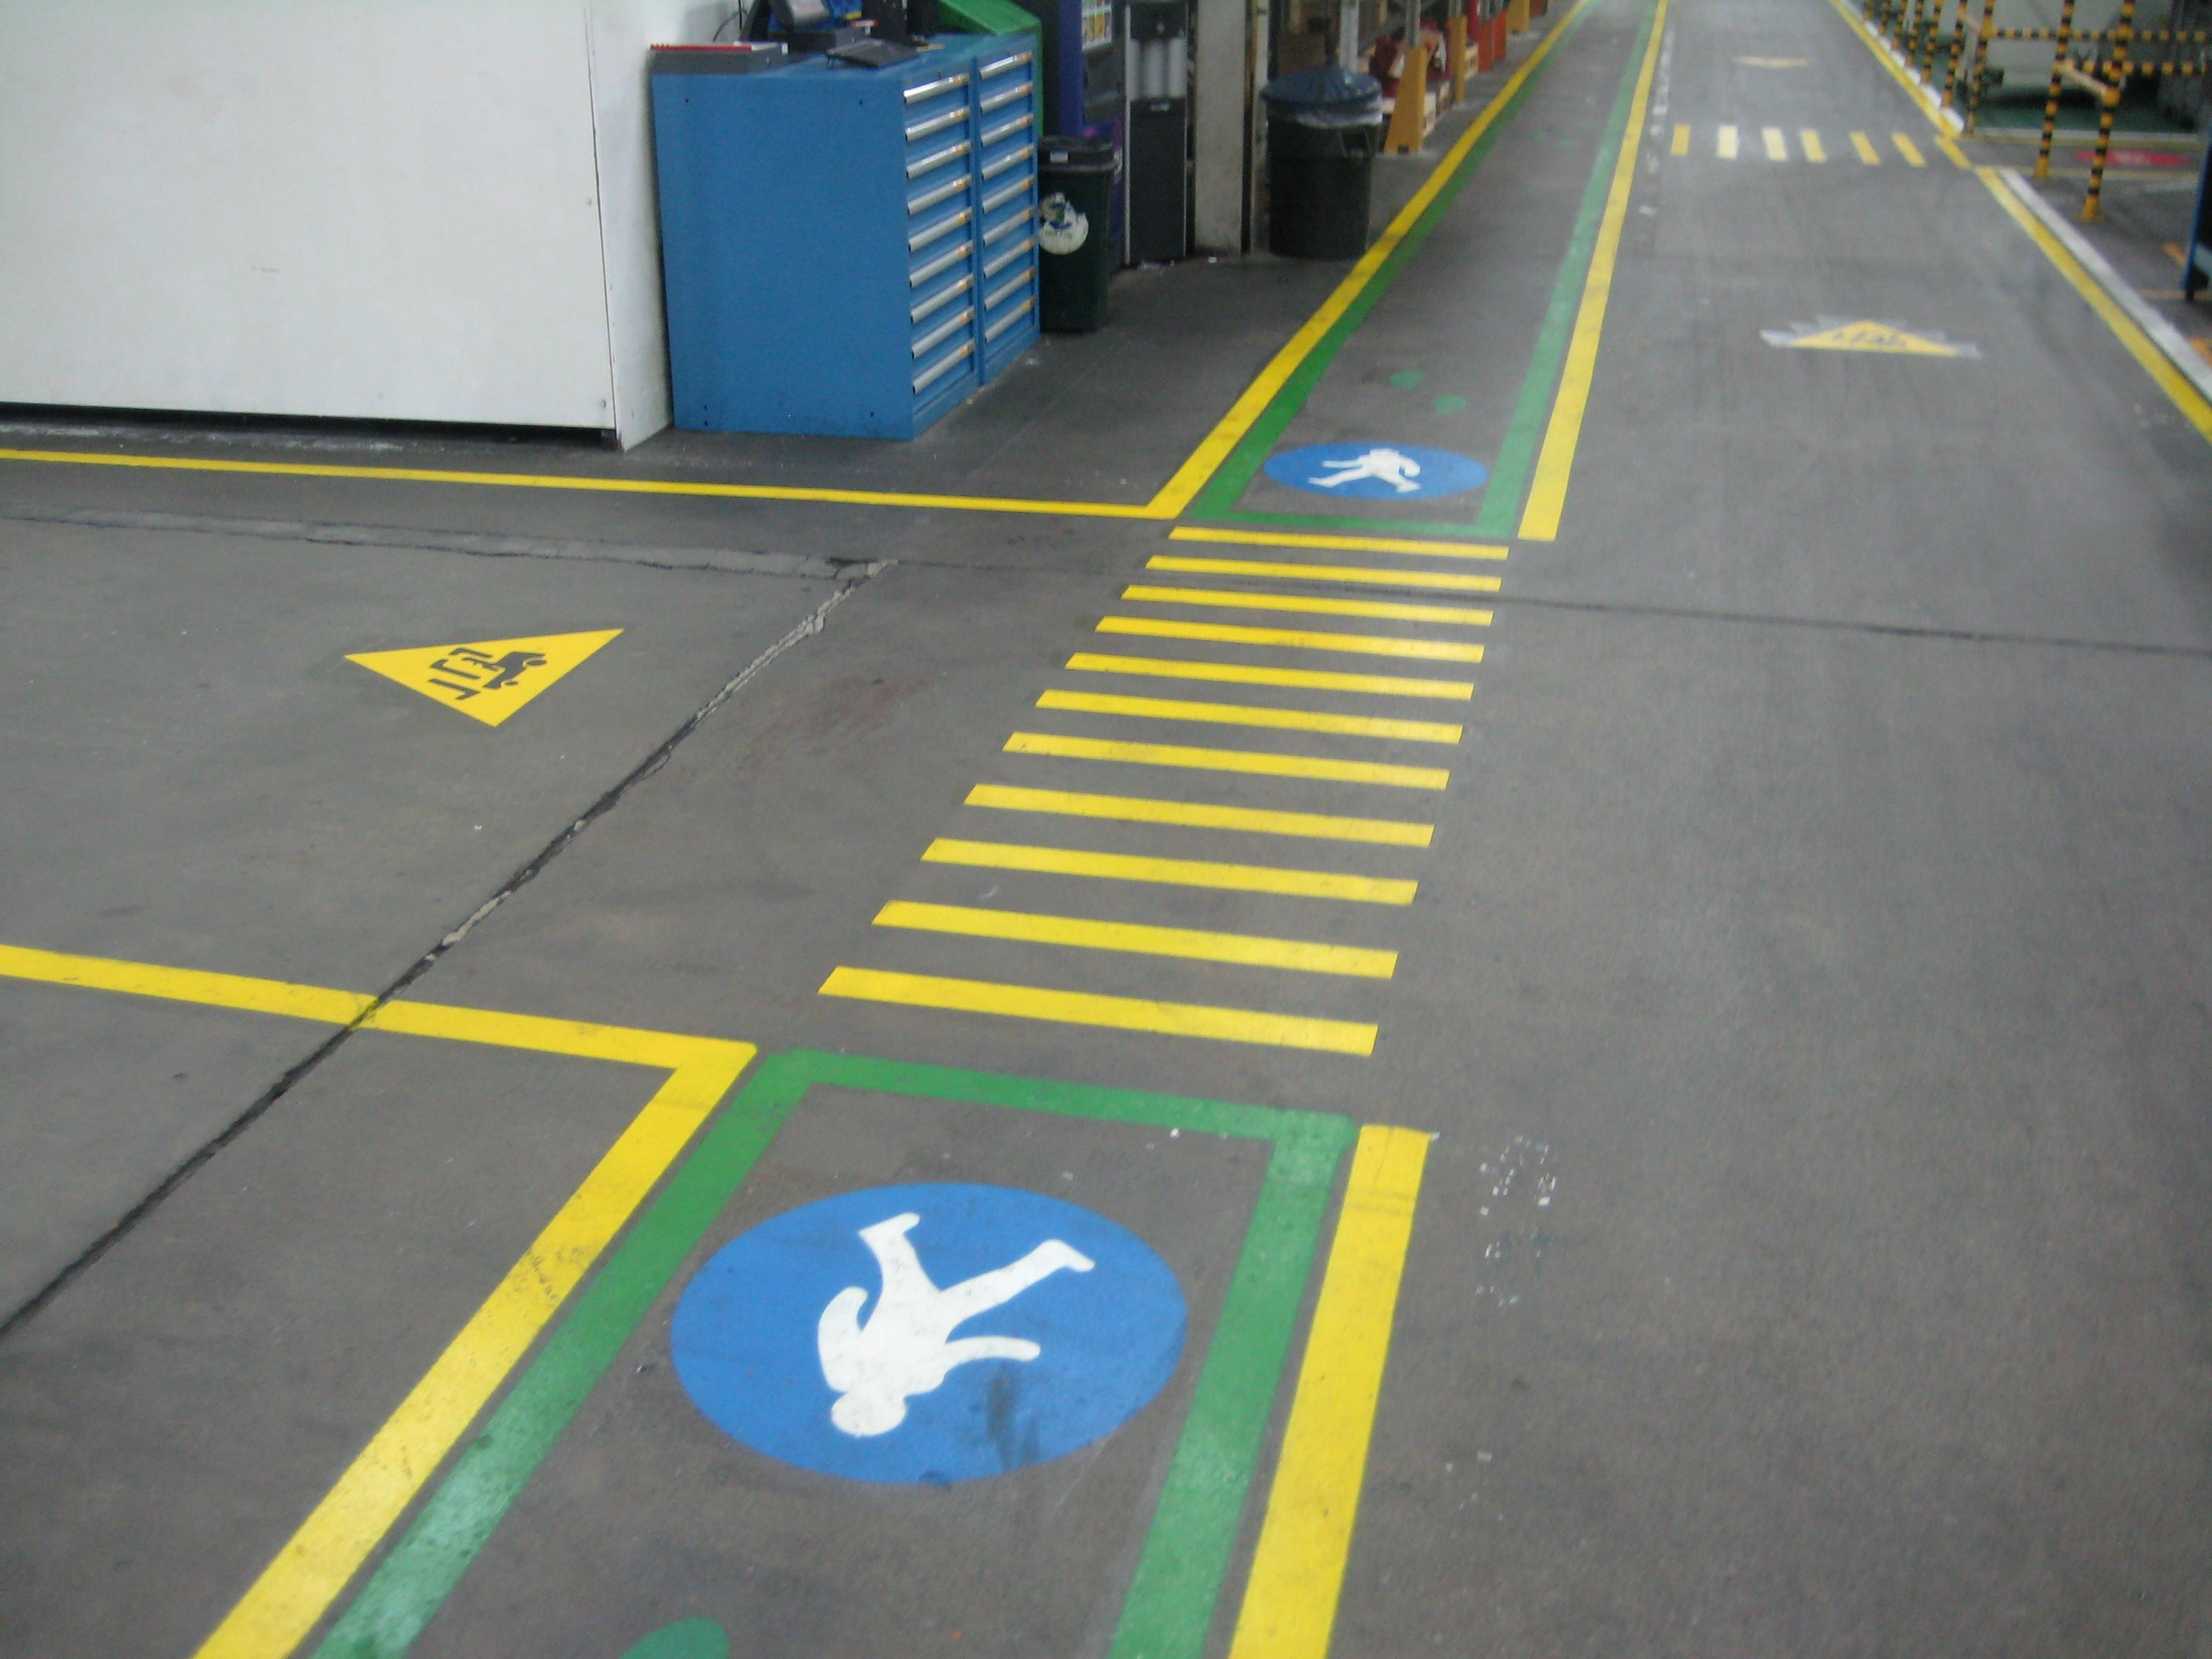 5S Floor marking designed to support for Lean